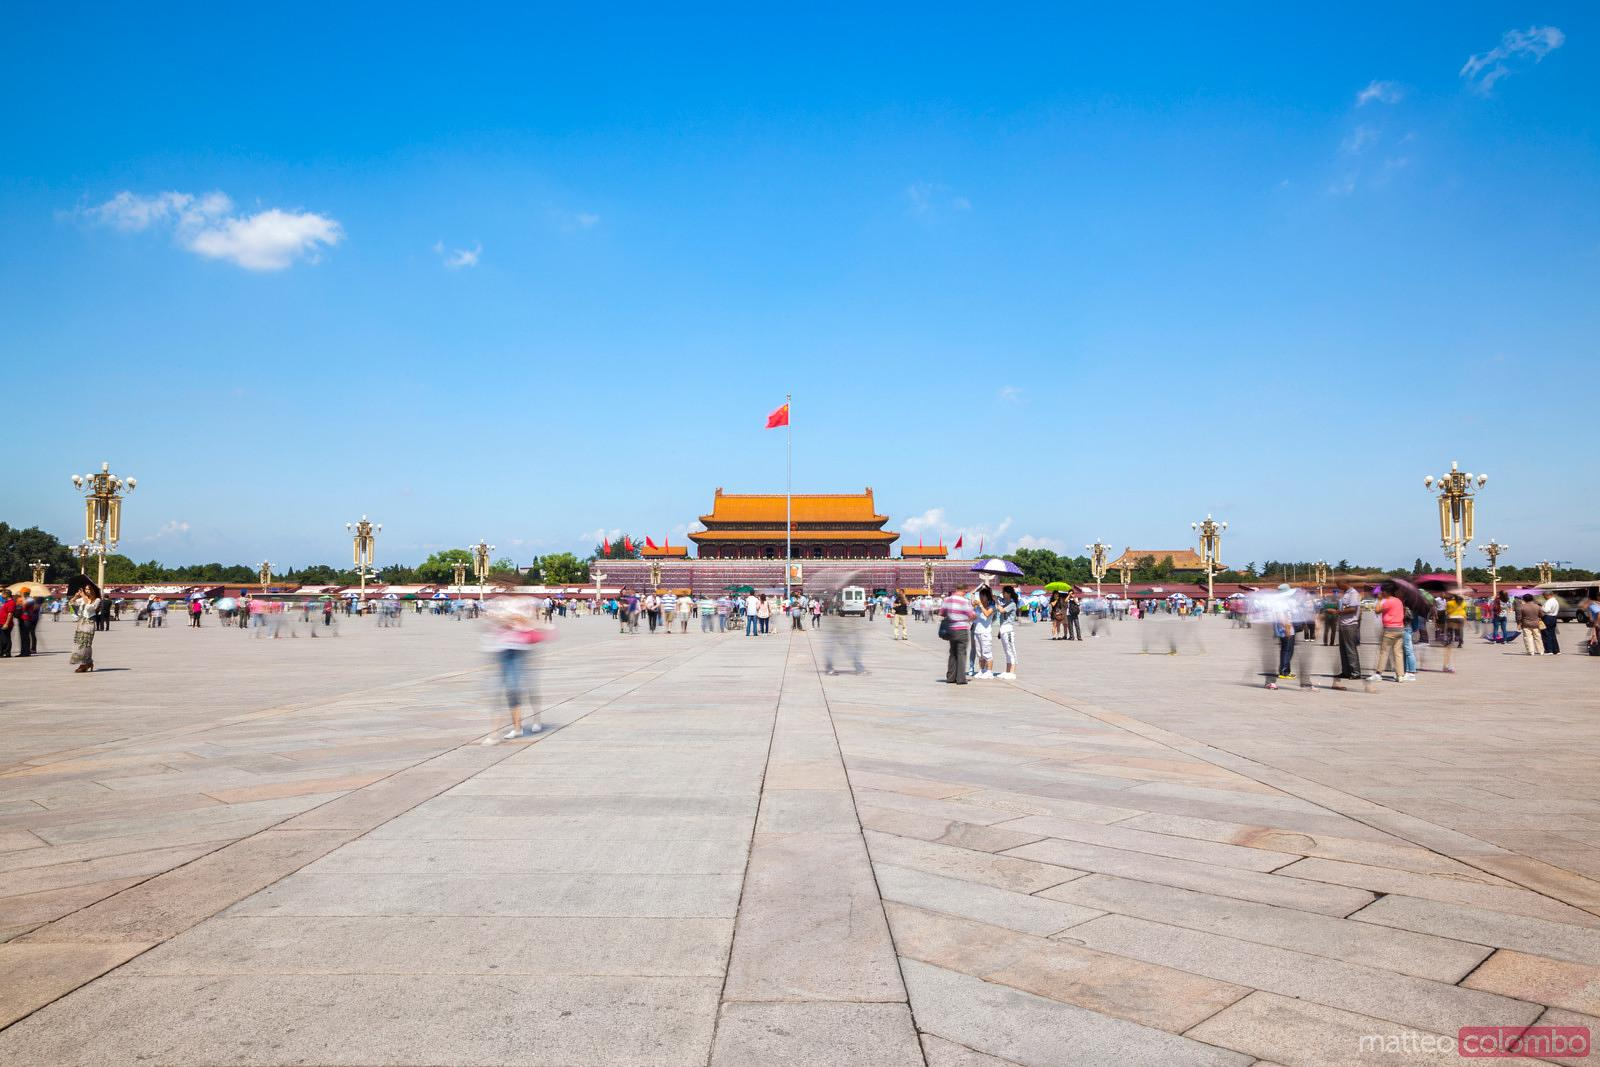 The red flag in Tiananmen square, Beijing